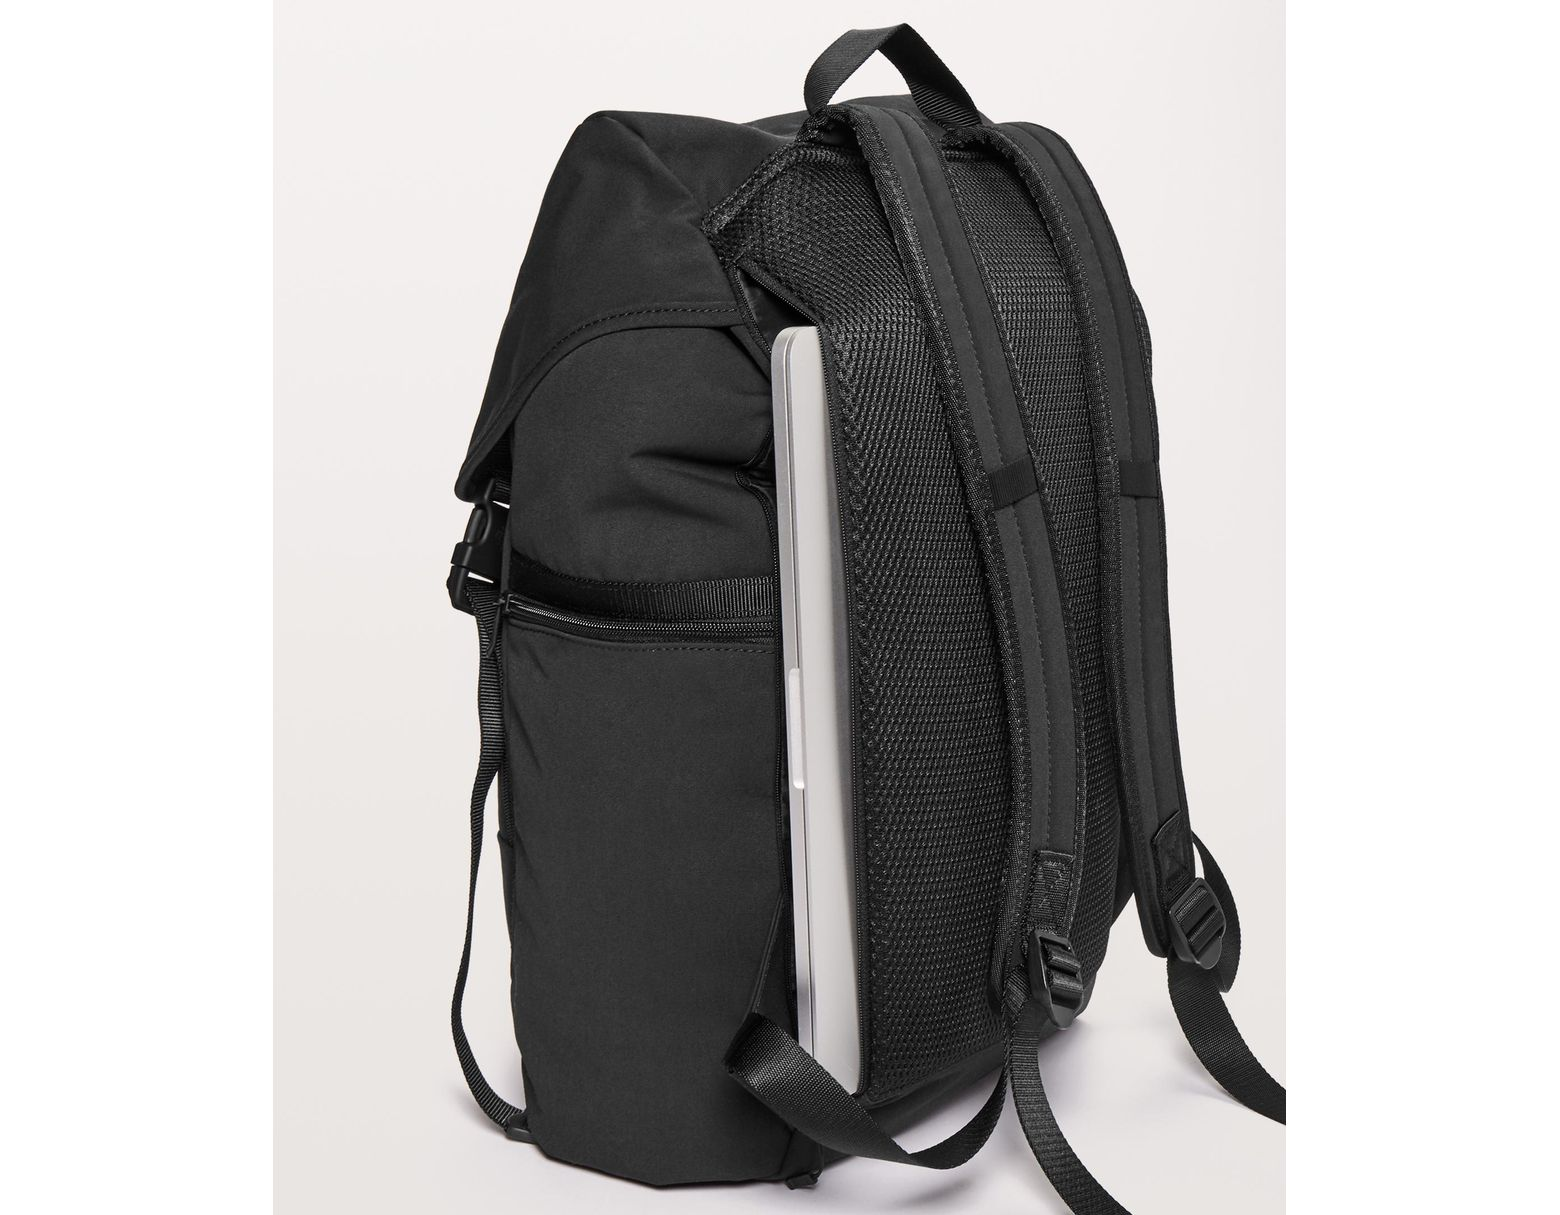 978a55d968b lululemon athletica Command The Day Backpack *24l in Black for Men - Lyst